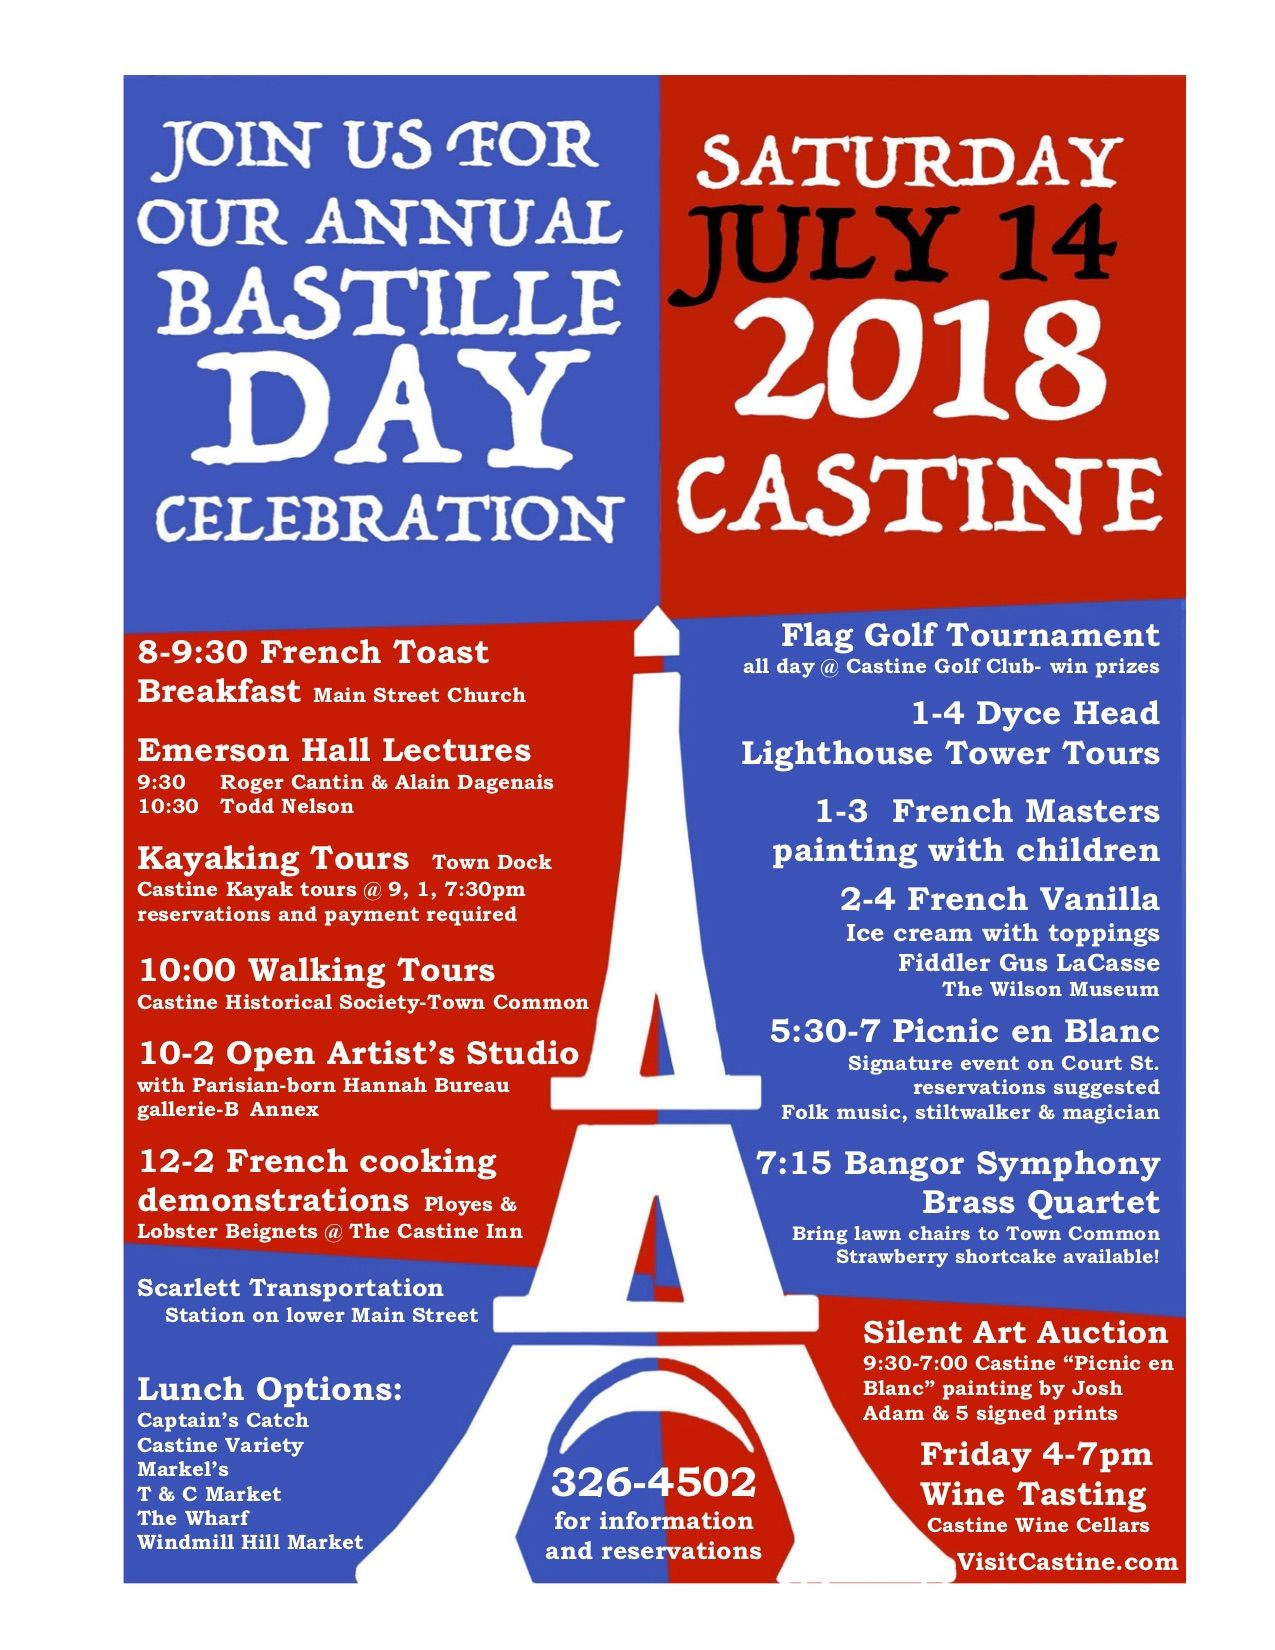 Join Us For Our 4th Annual Bastille Day Celebration On July 14 2018 For More Info Go To Www Visitcastine Com And Look For Spe Bastille Day Bastille Castine